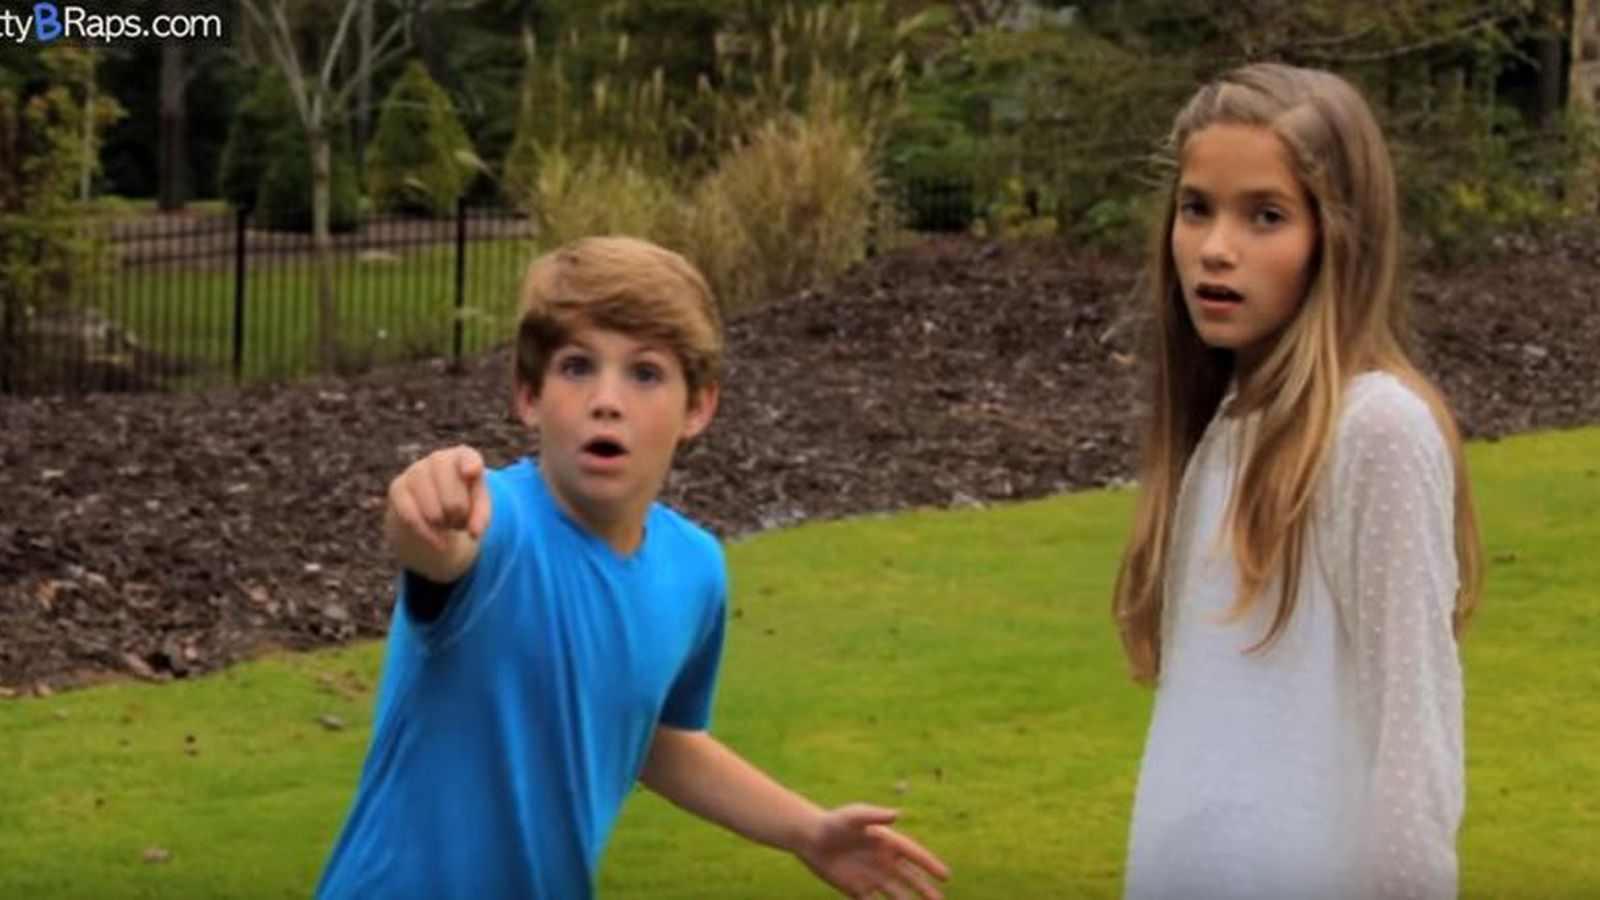 Friday Free Kick: Deconstructing MattyB covering Outkast ...